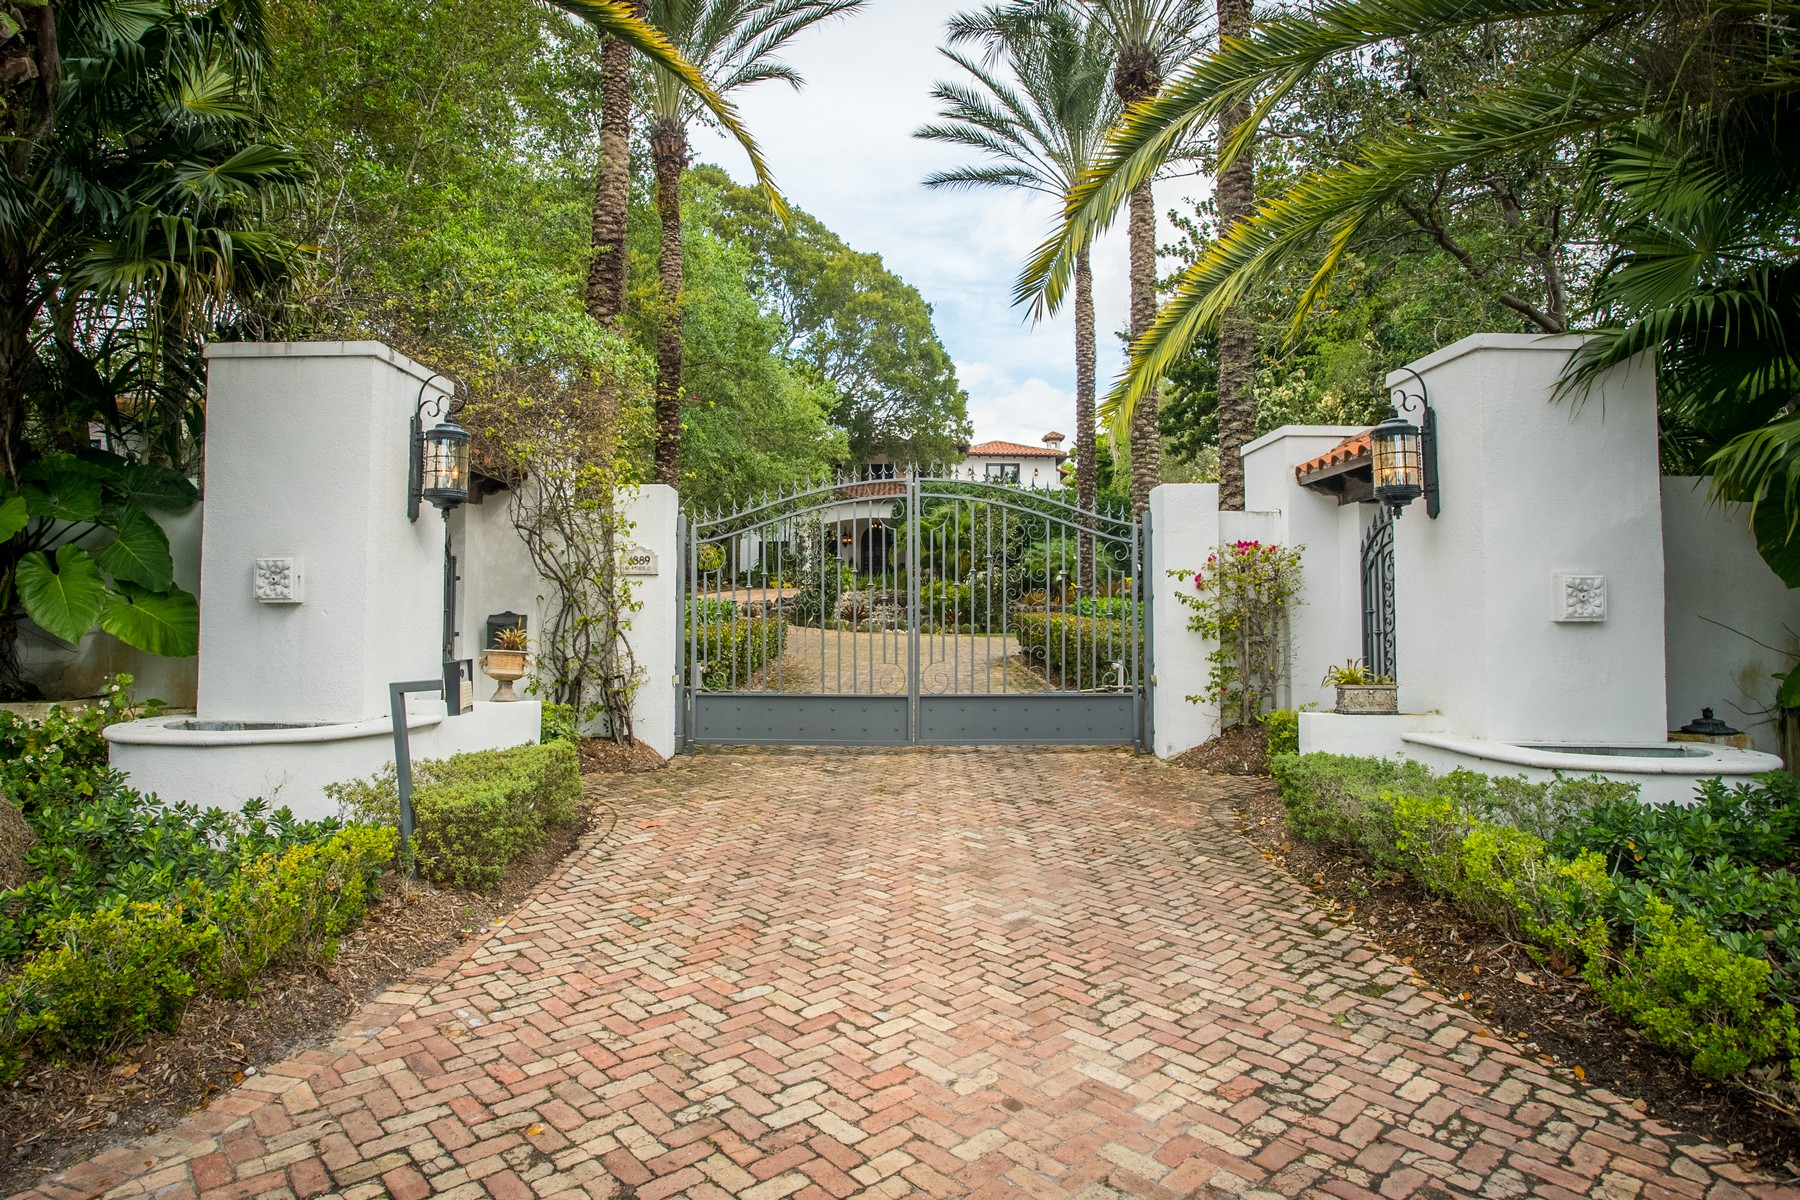 Single Family Home for Sale at 1889 S Bayshore Dr Coconut Grove, Florida, 33133 United States